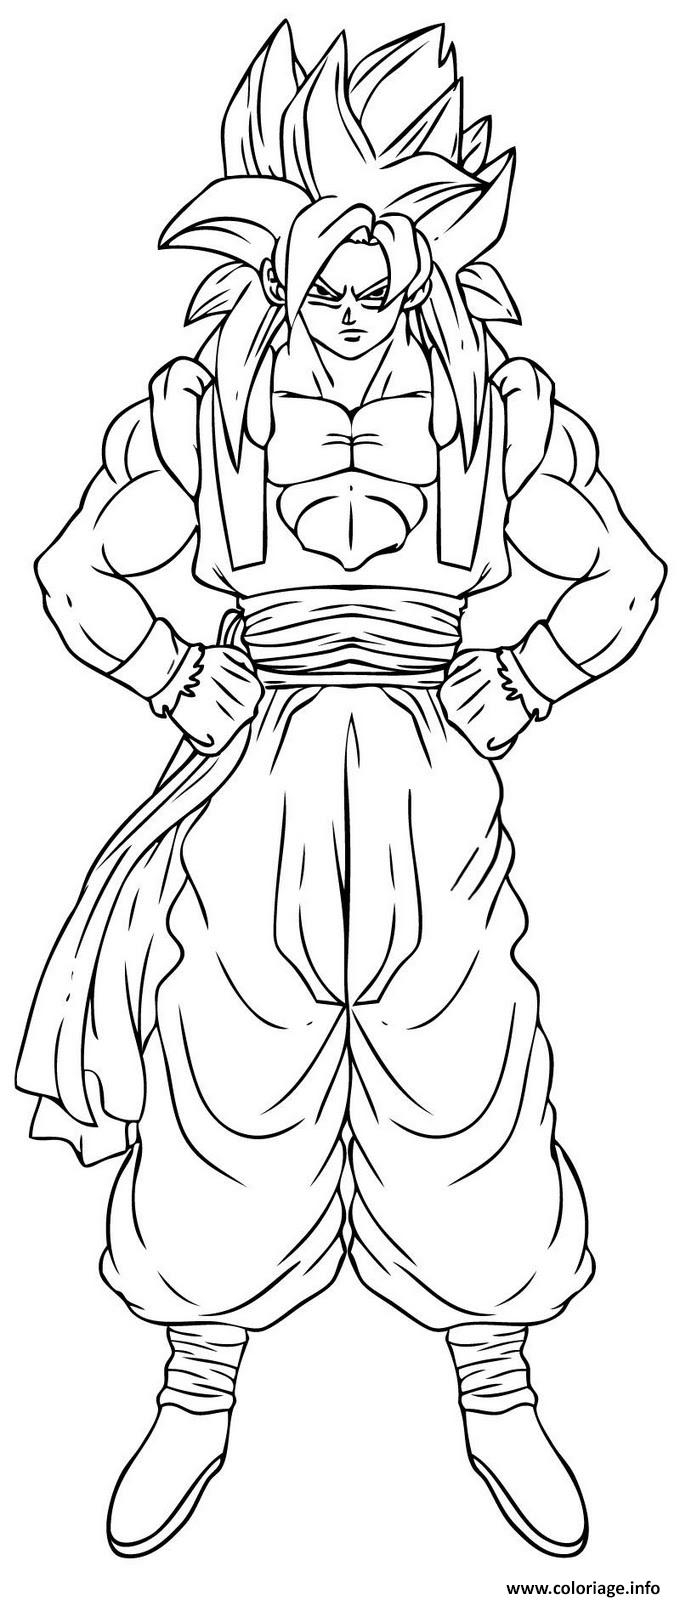 dragon ball z coloring pages - dragon ball z 143 coloriage